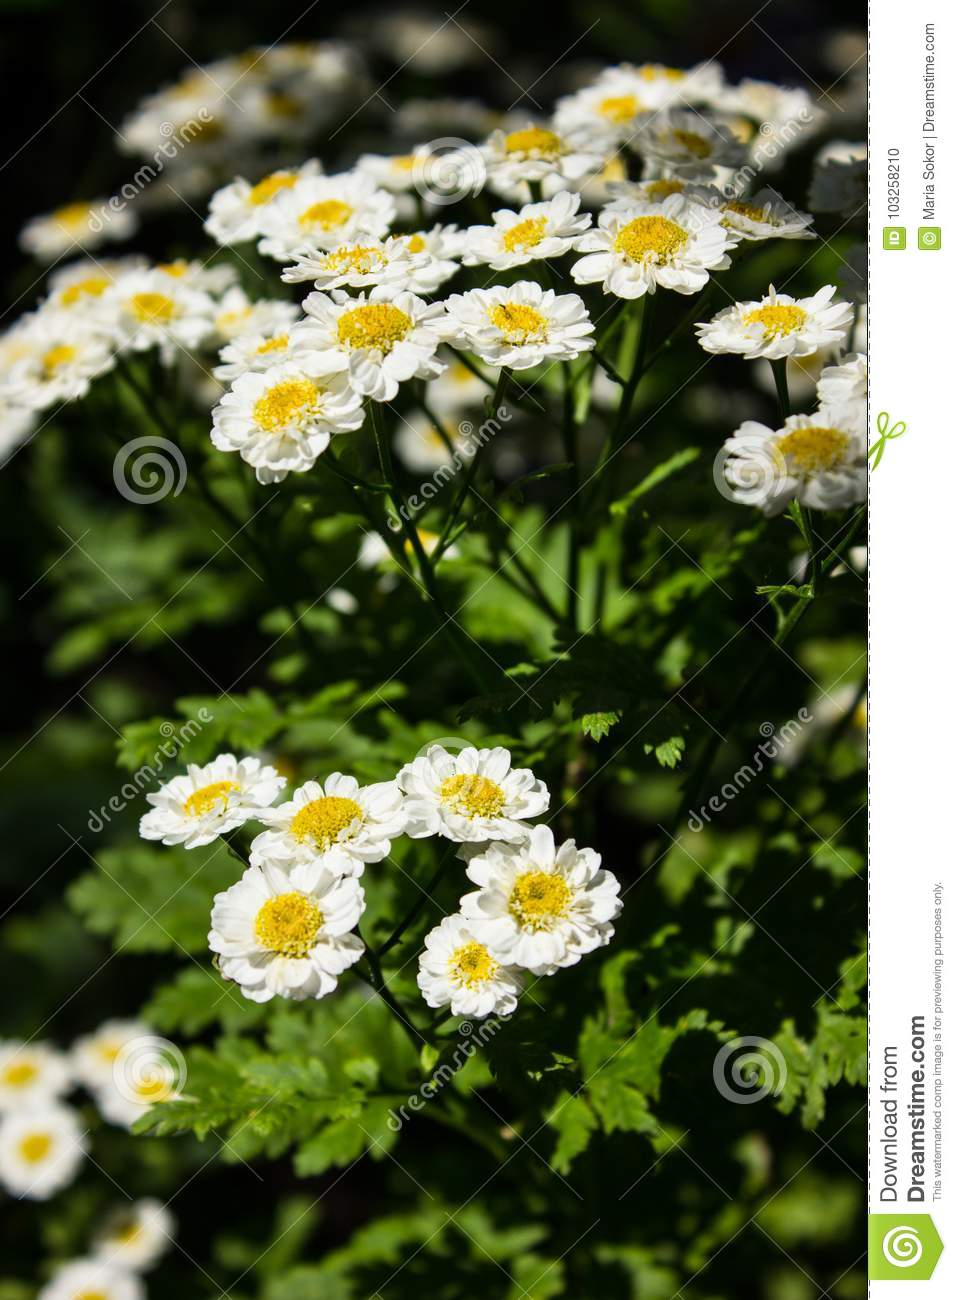 Feverfew Tanacetum Parthenium In Flower  Mass Of White And